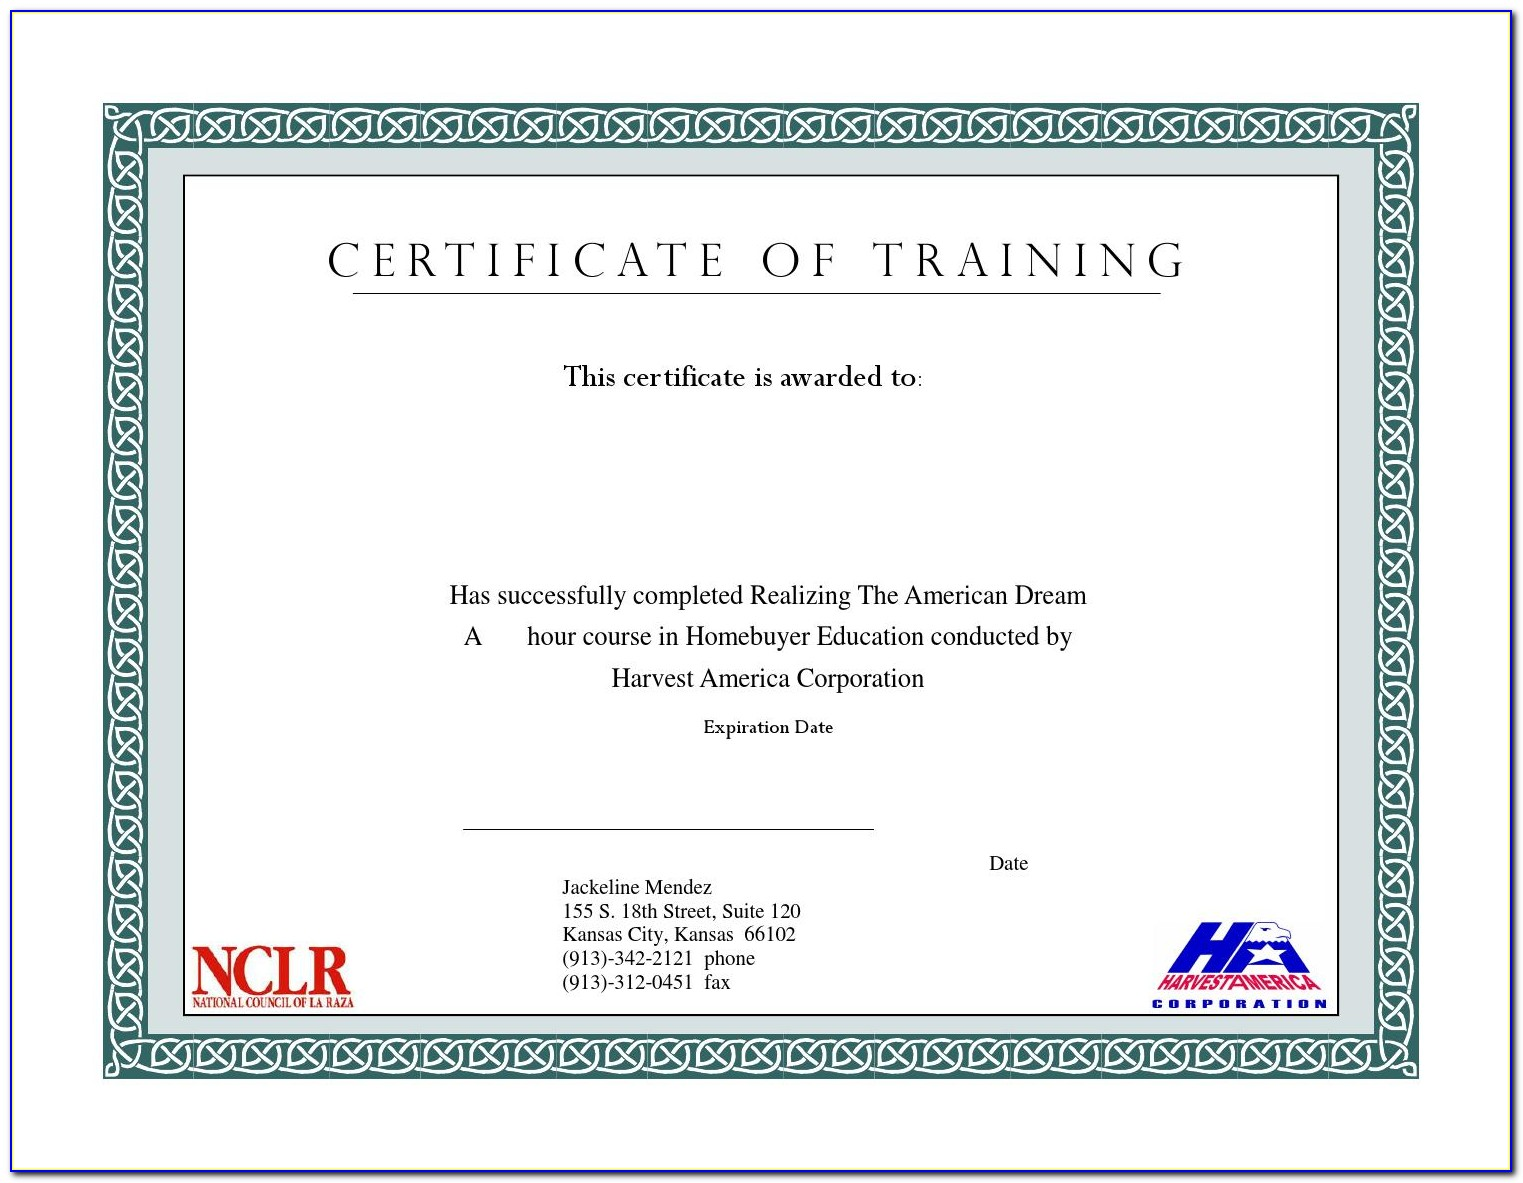 Homebuyer Education Course Certificate